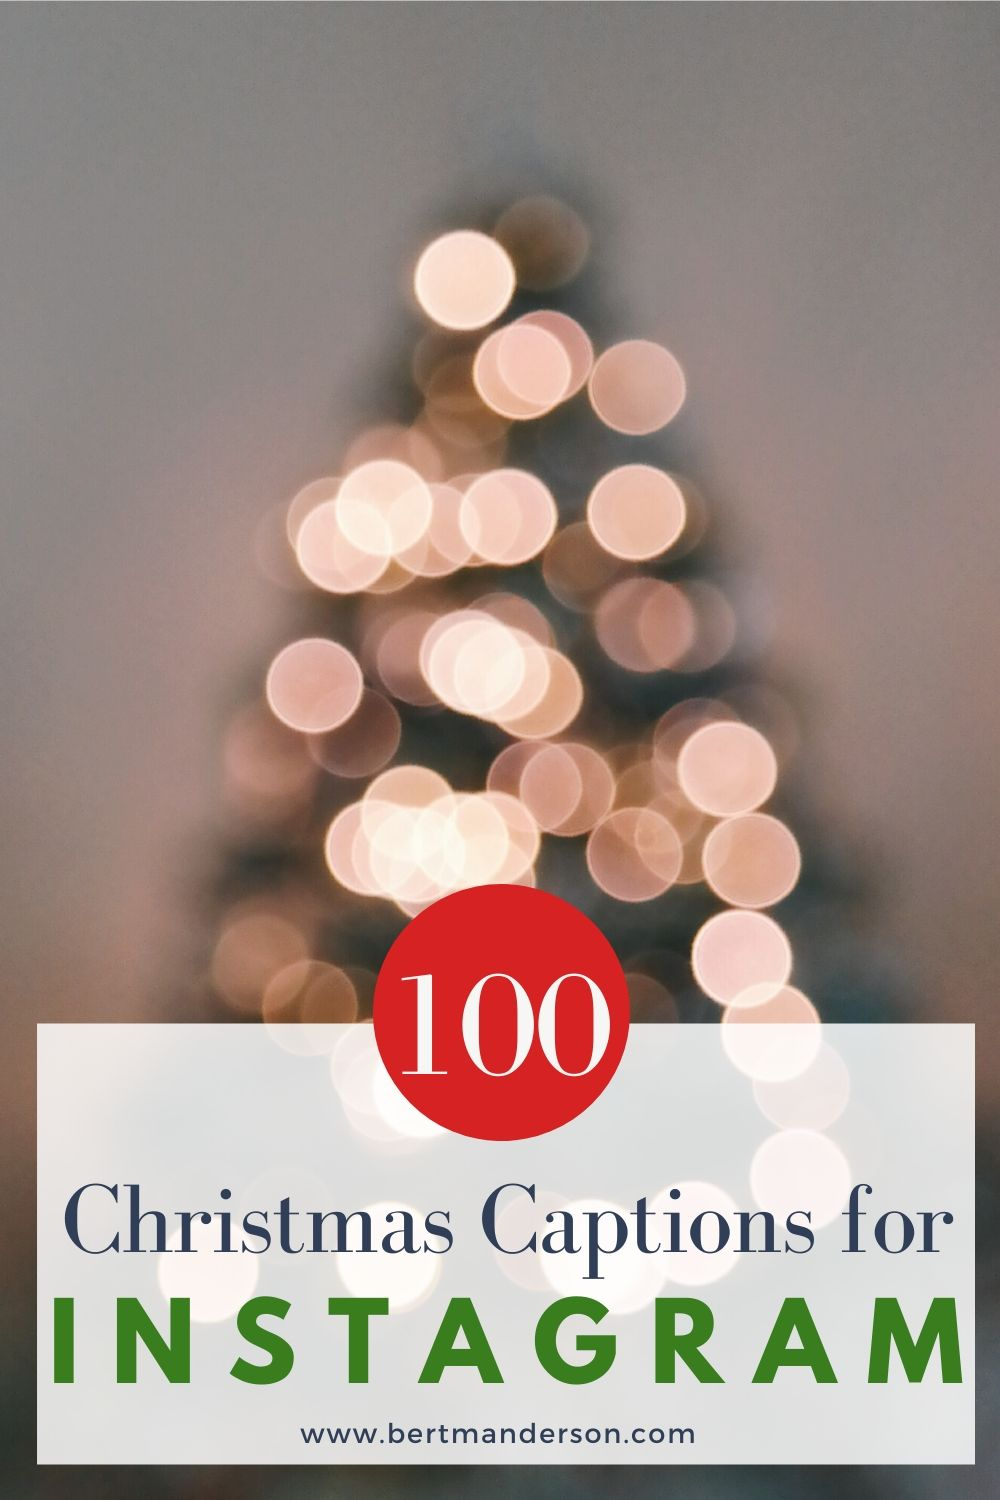 Christmas captions for Instagram. 100 quotes and captions to brighten up your Instagram this holiday season! #christmas #christmascaptions #instagramcaptions